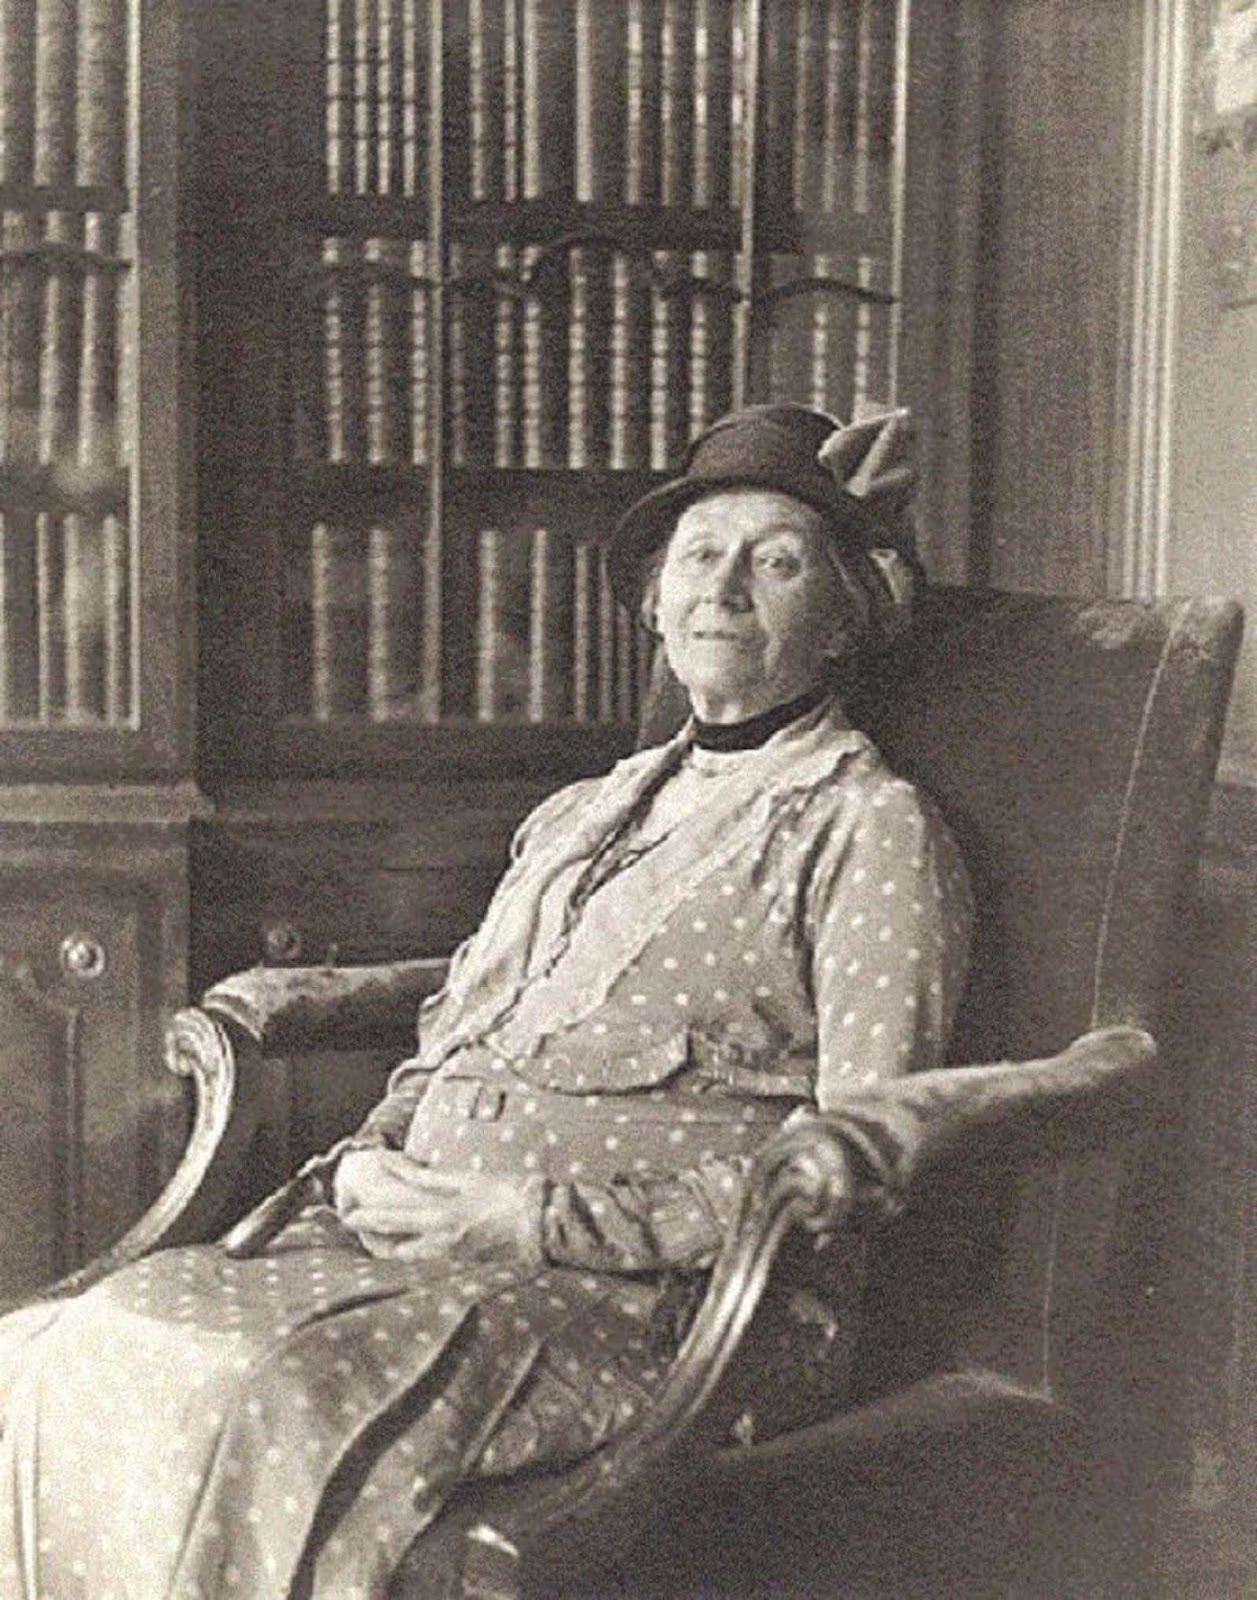 Alice Hargreaves in 1932, at the age of 80.